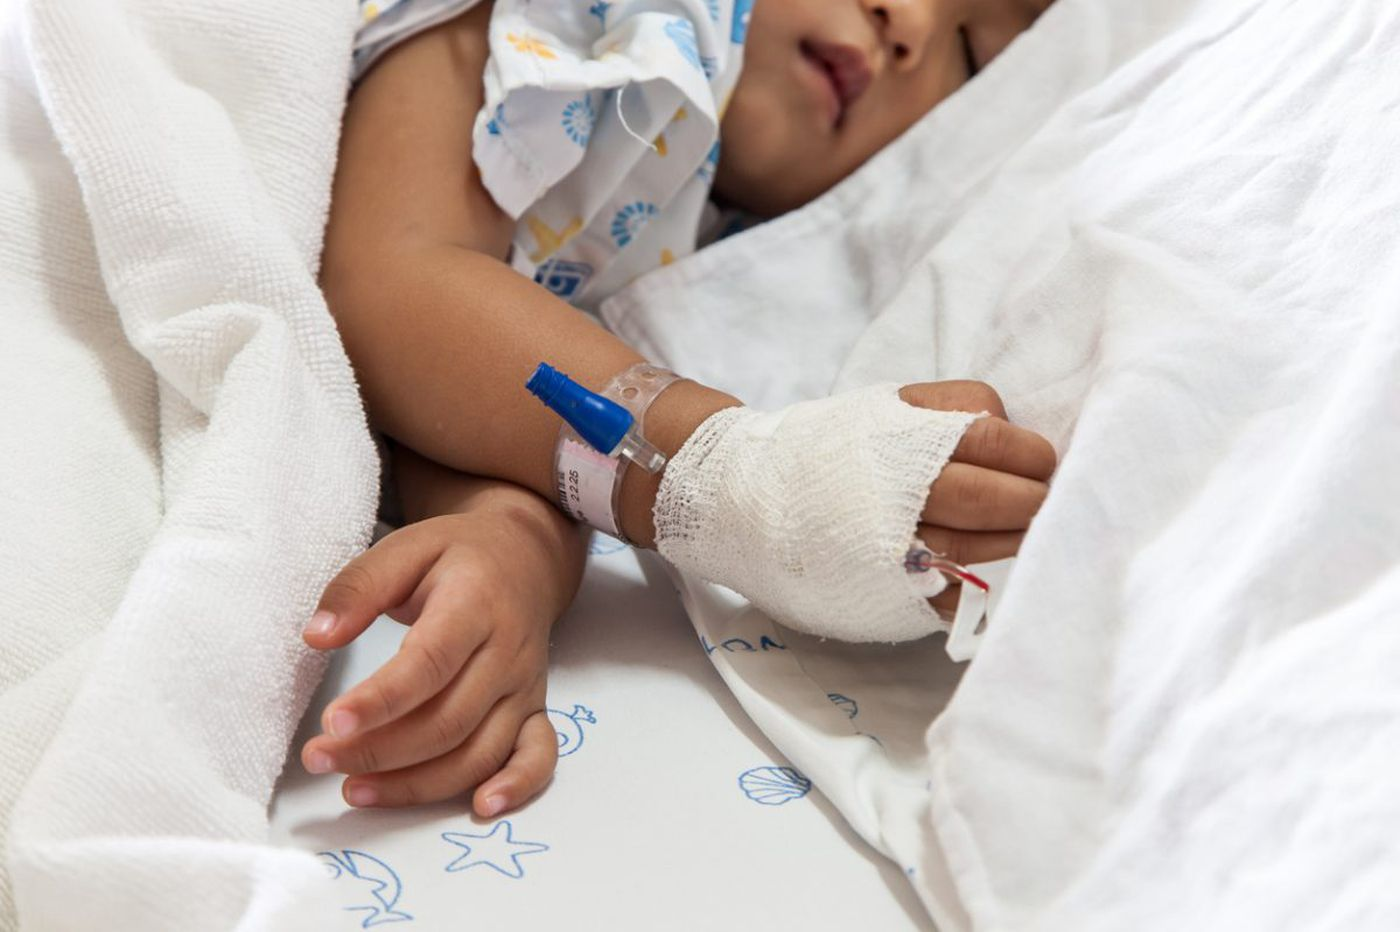 Medical Mystery: Why is this 4-year-old so often in the ER?